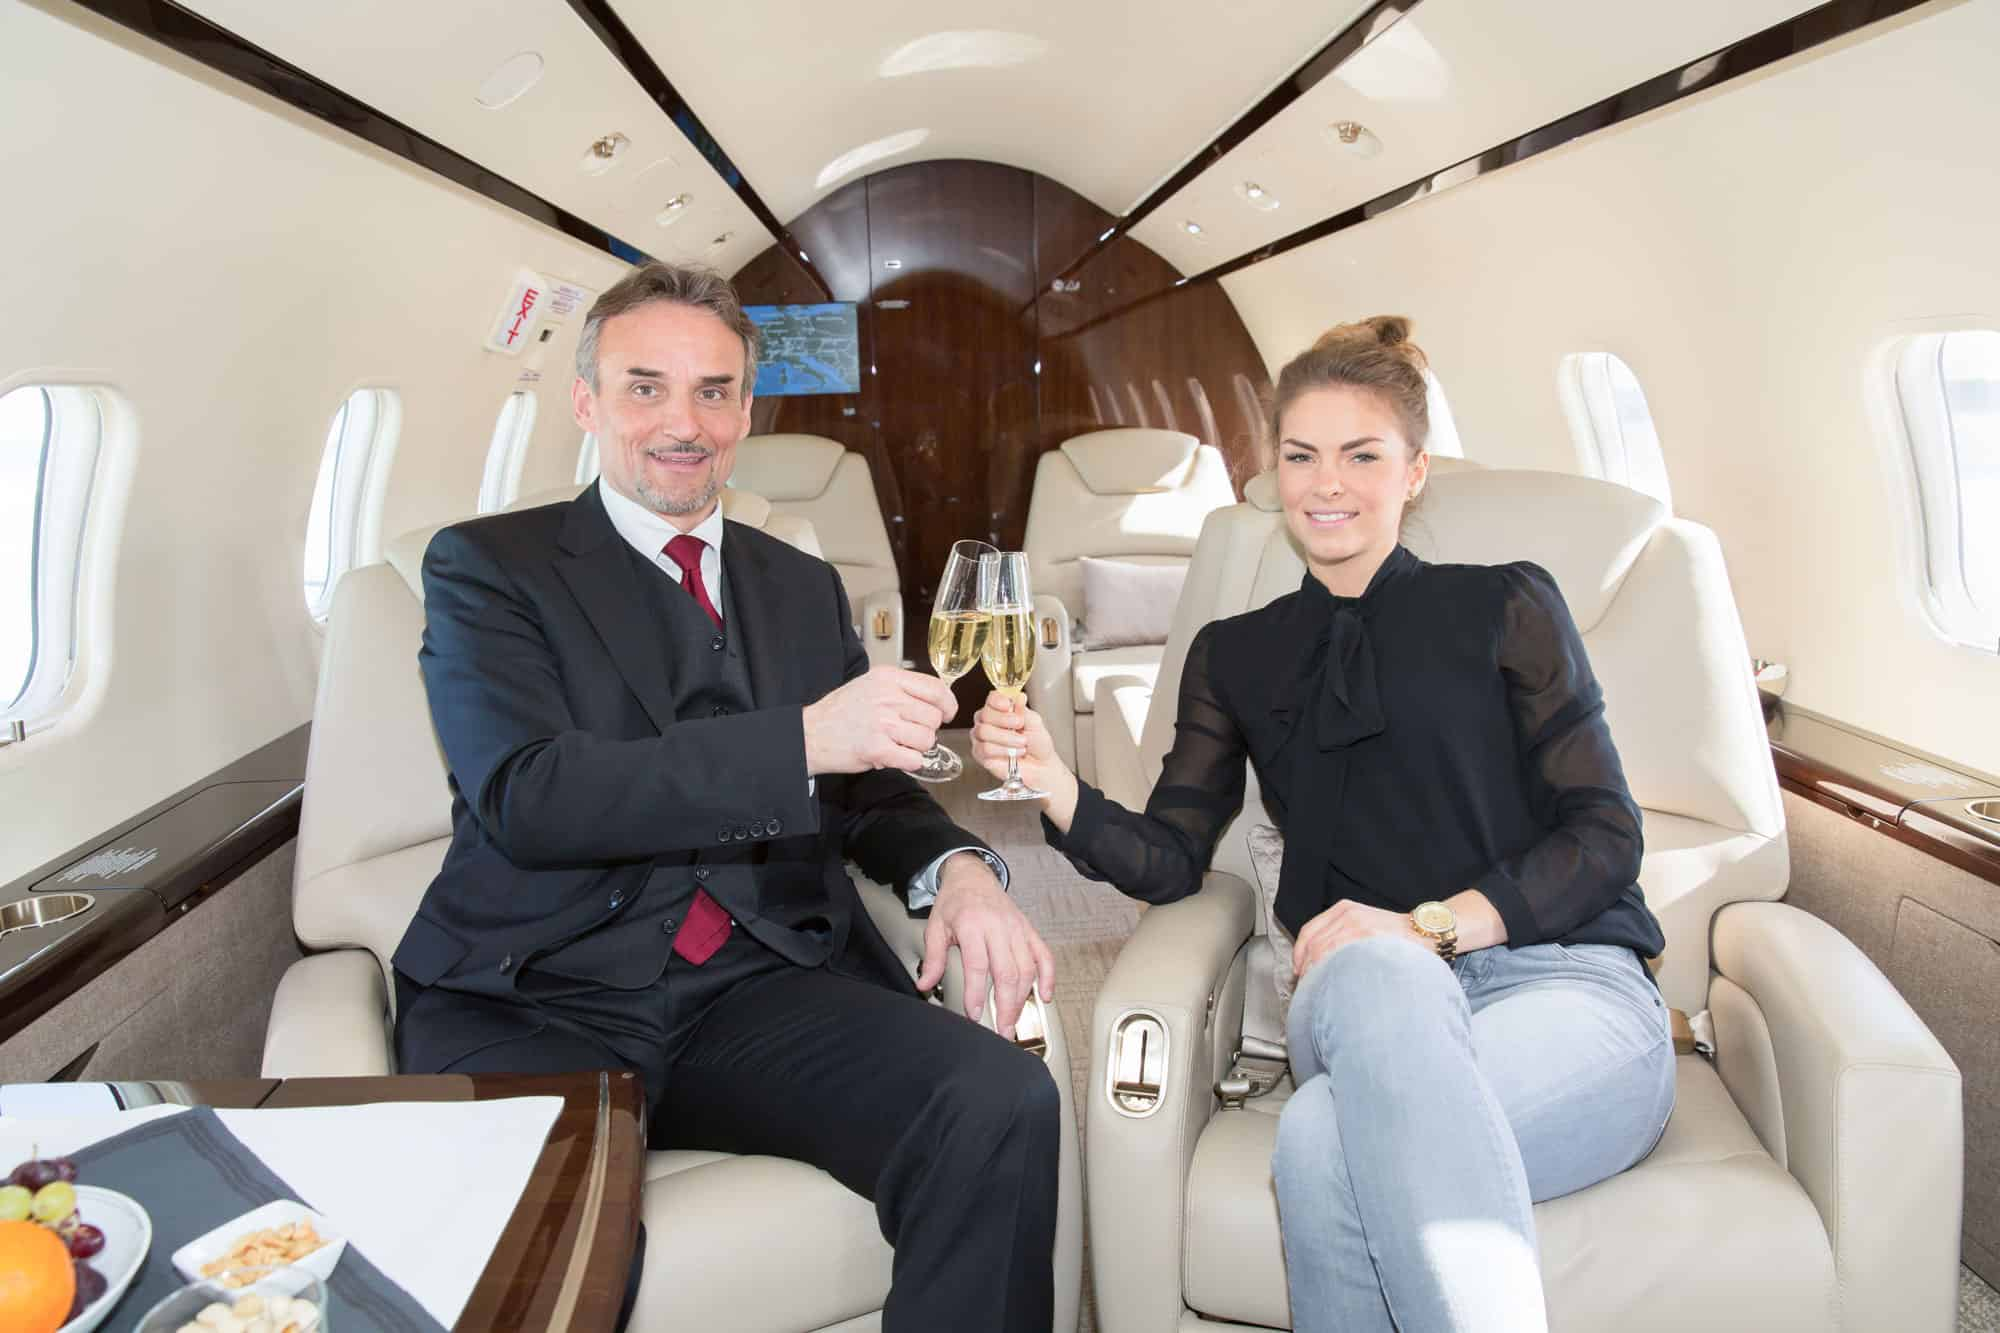 A champagne toast on a private jet - alcohol etiquette on private jets